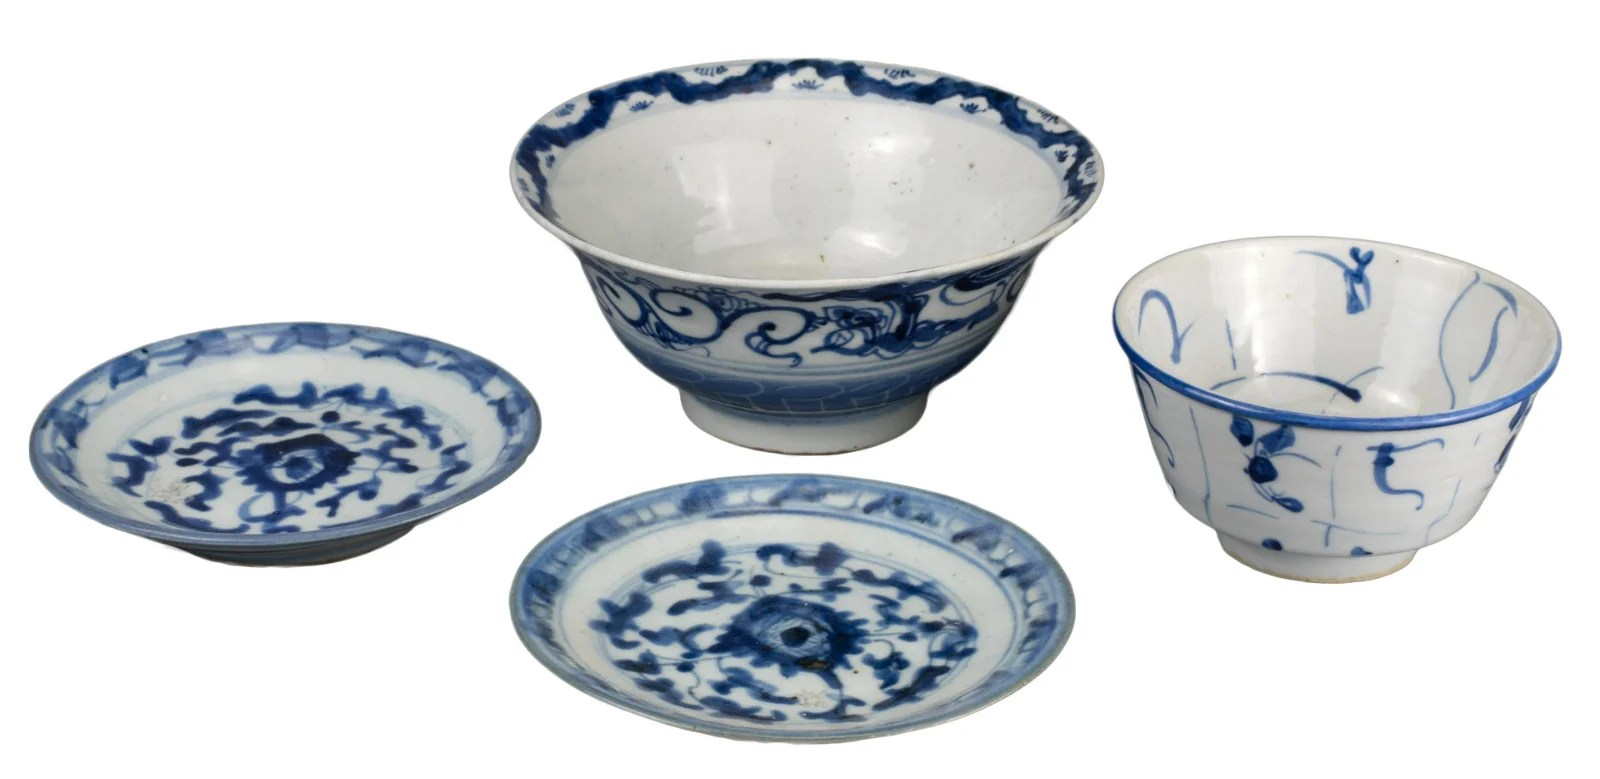 FOUR CHINESE BLUE AND WHITE PORCELAIN BOWLS & DISHES,